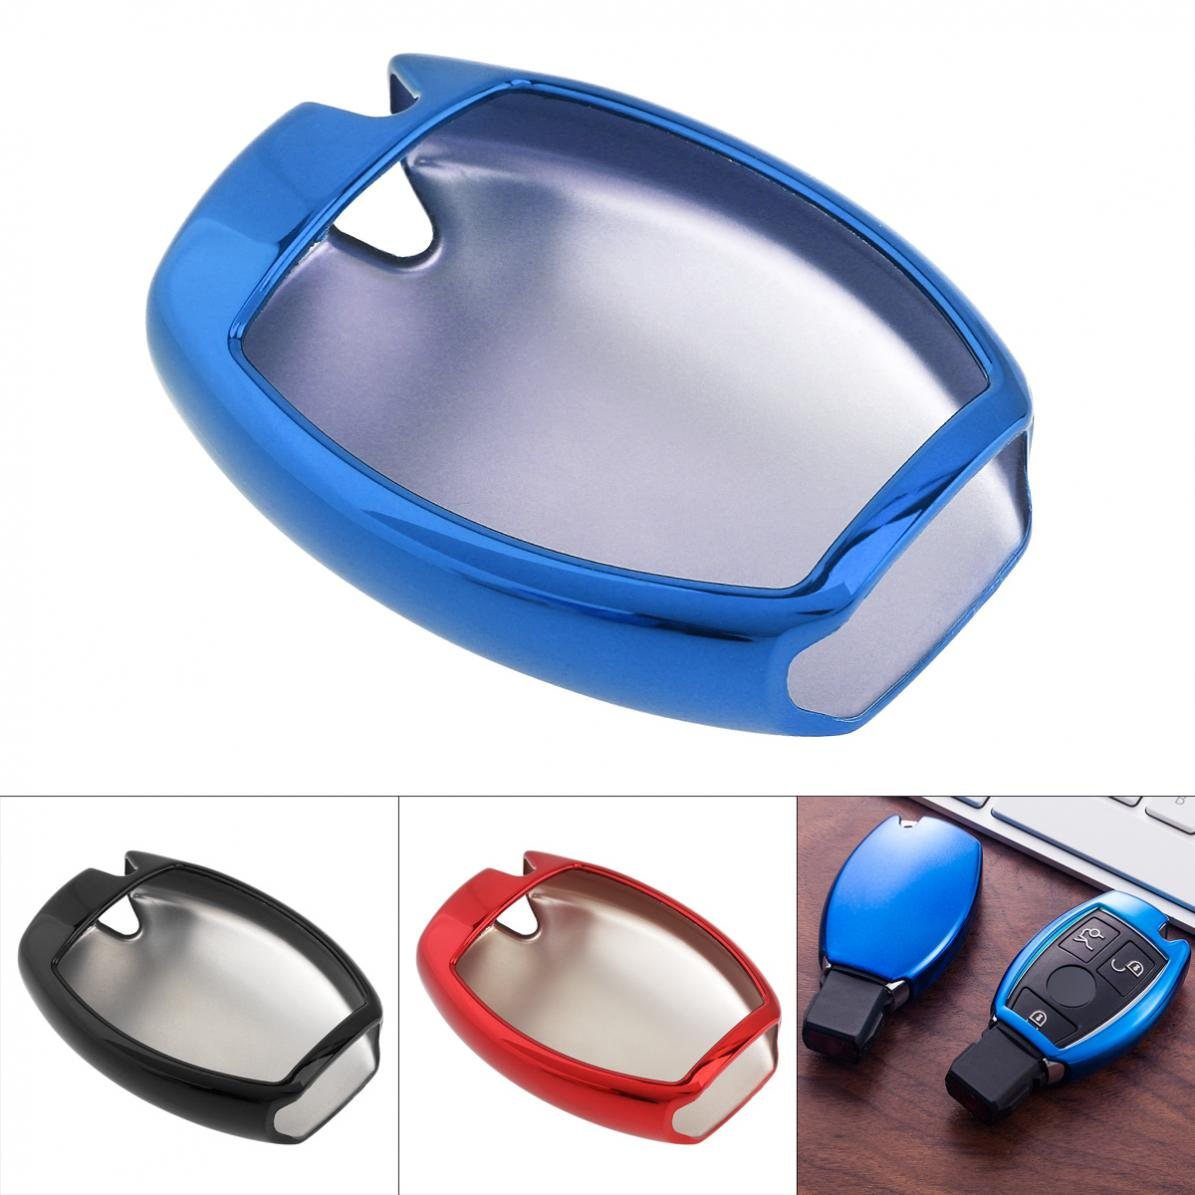 3 Colors Straight Plate TPU Car Key Case Protector Holder for Mercedes Benz A B R G Class GLK GLA W204 W251 W463 W176 image